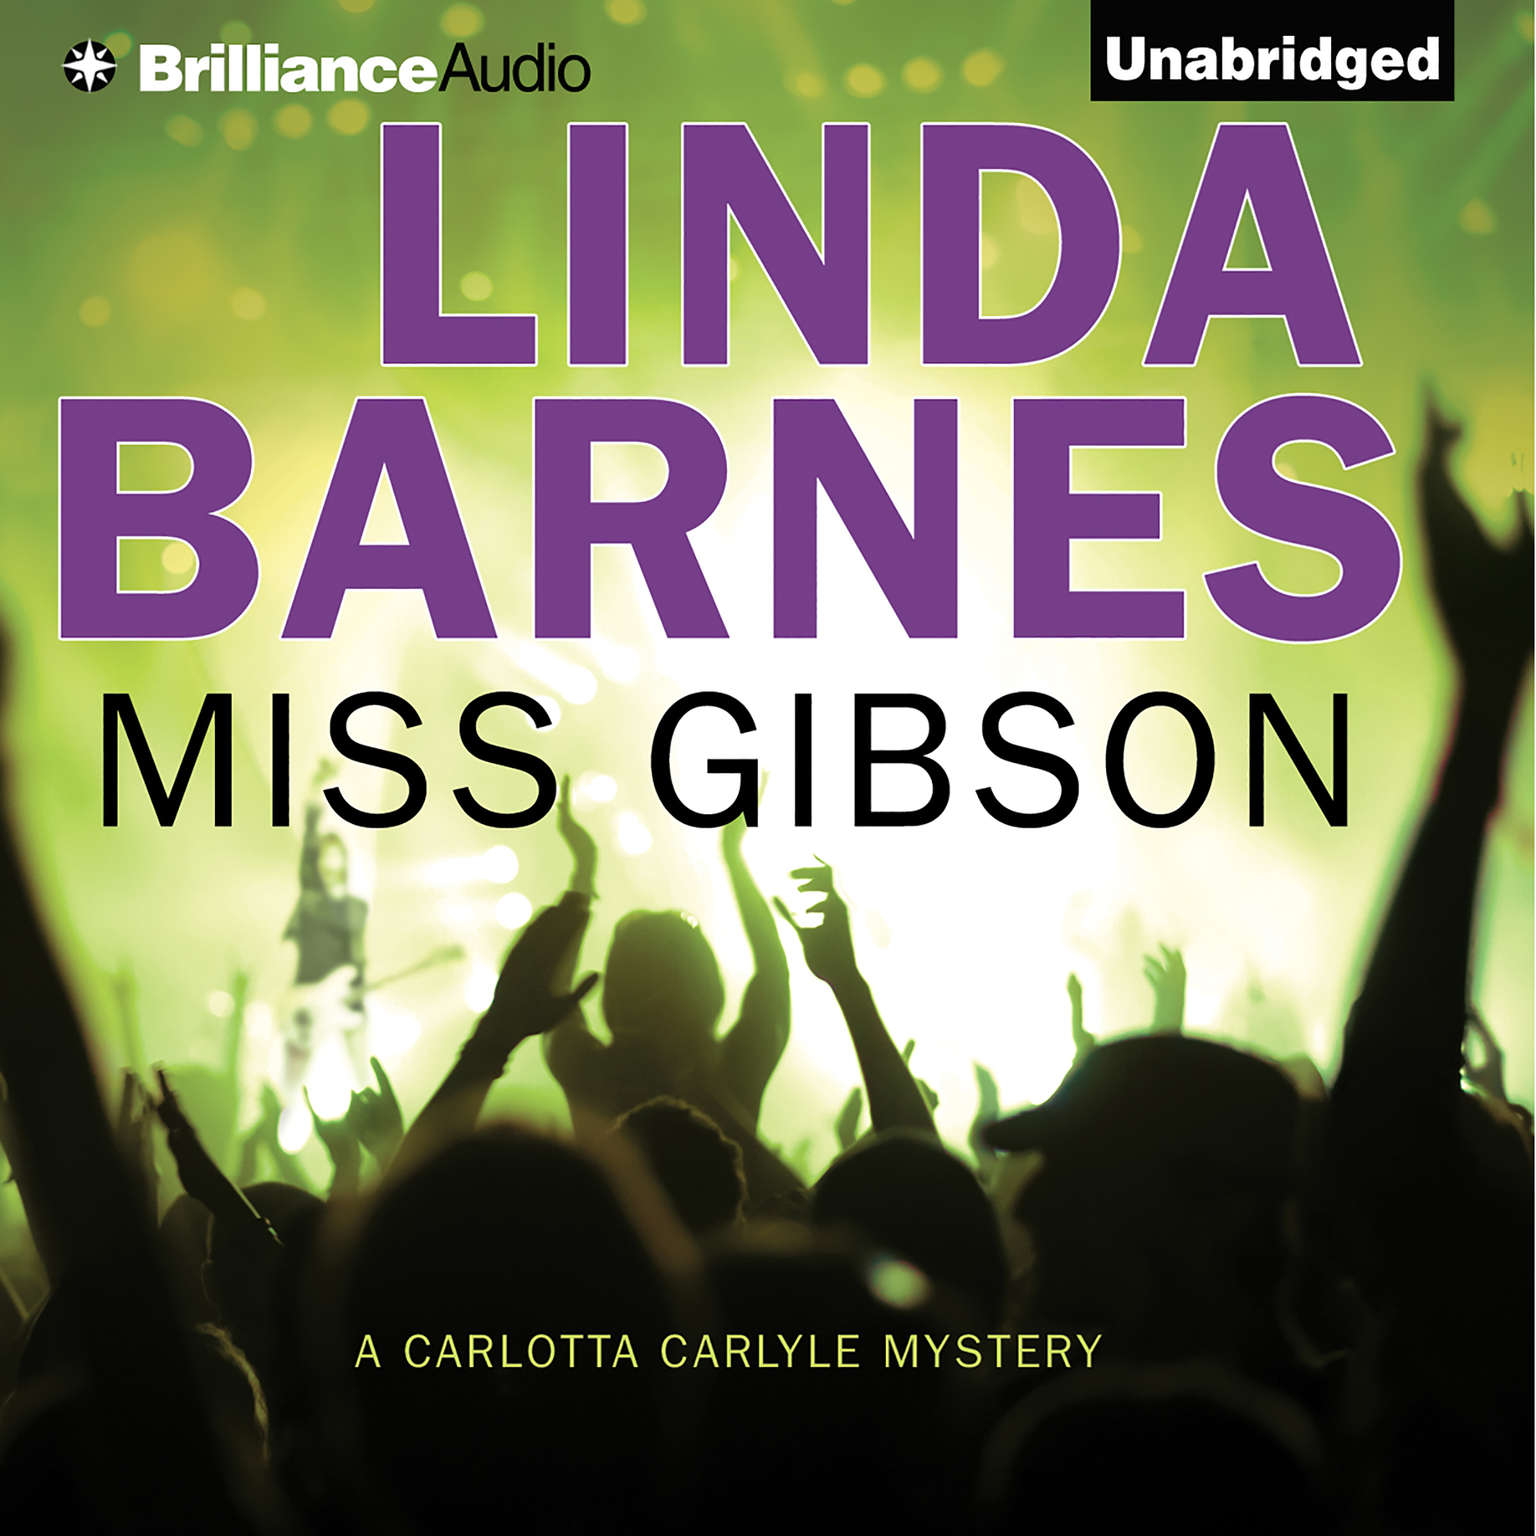 Printable Miss Gibson Audiobook Cover Art